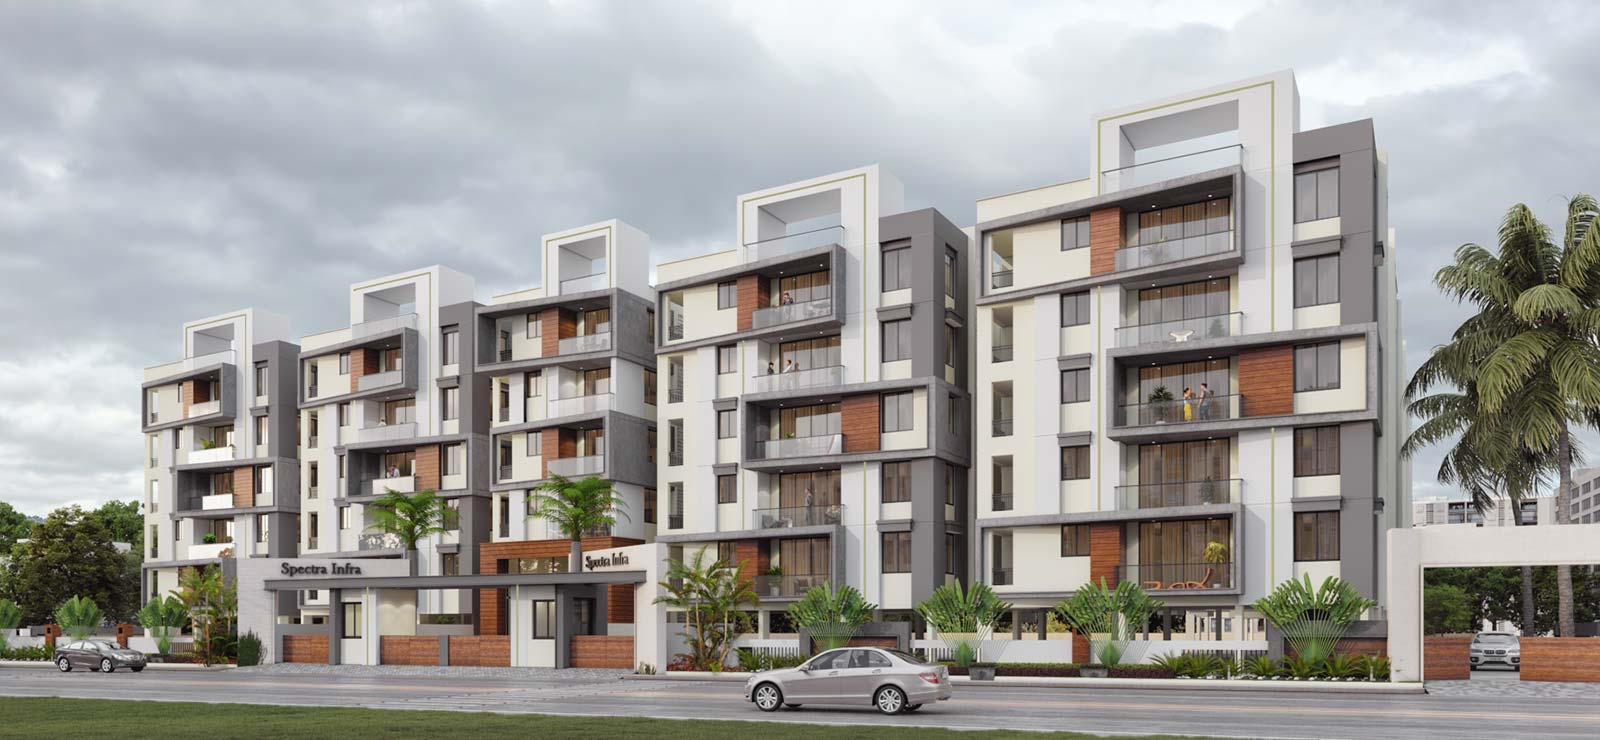 Apartments by Spectra Infra